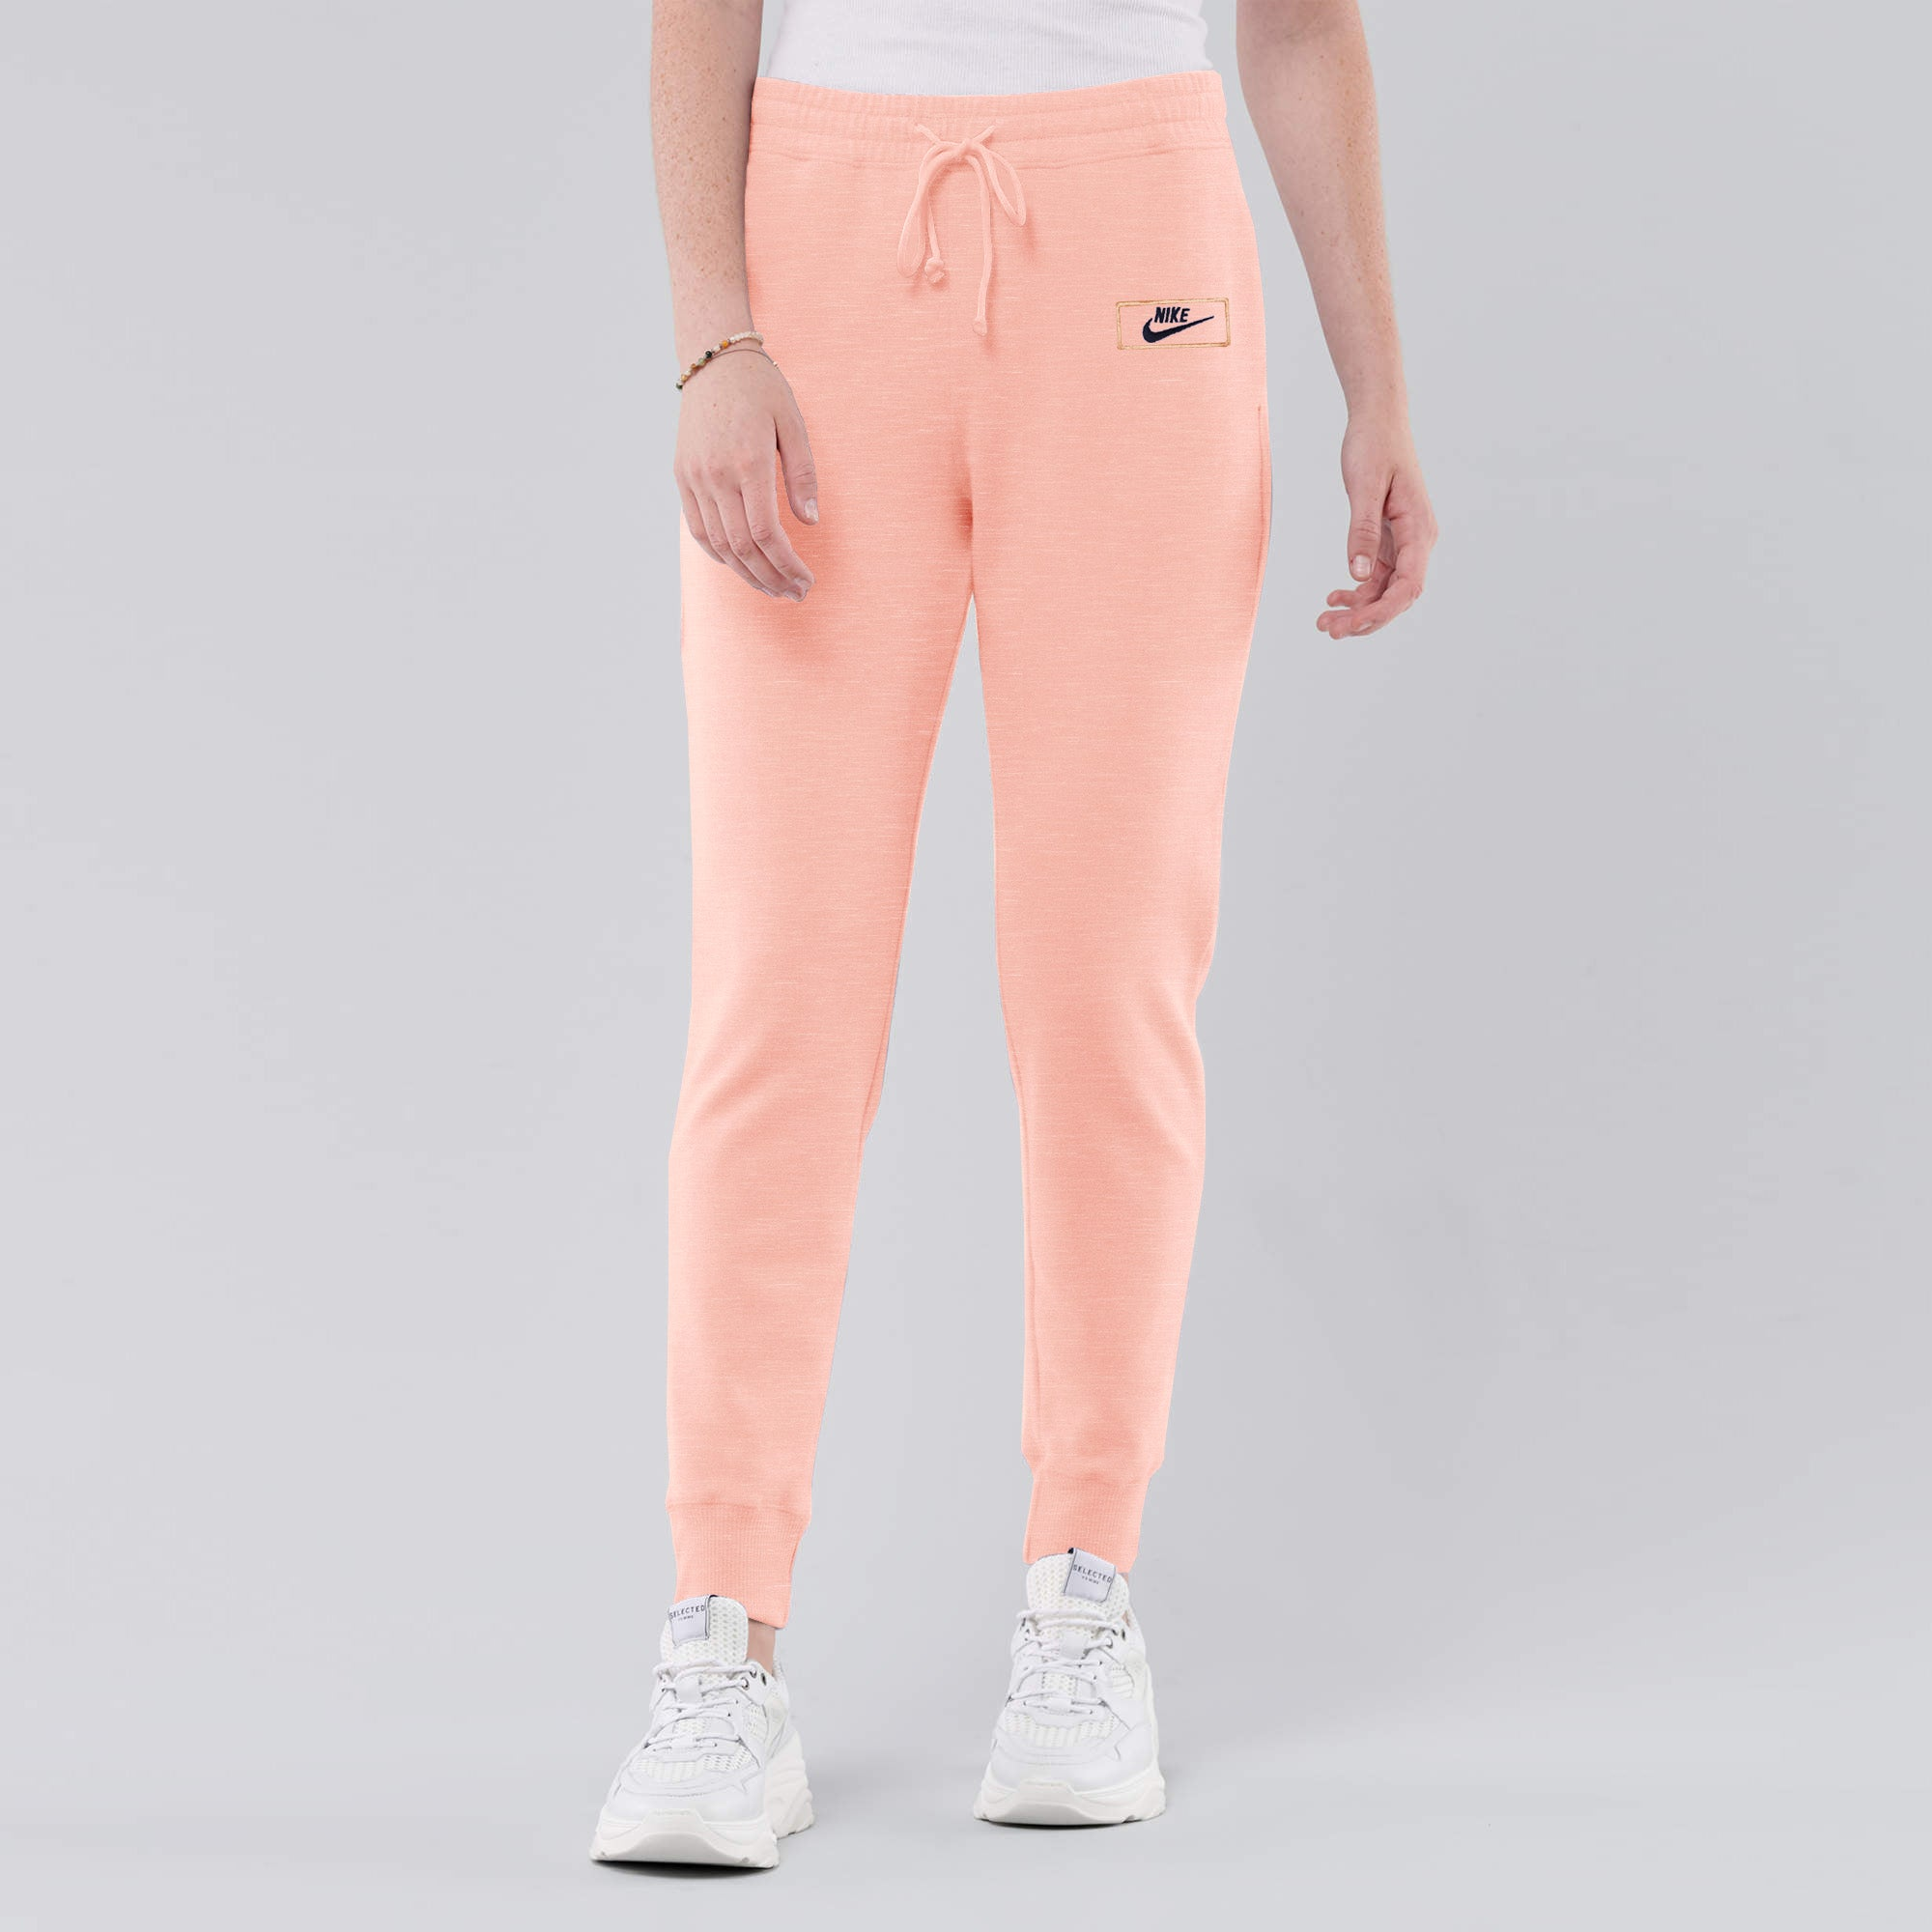 NK Fleece Slim Fit Jogger Trouser For Ladies-Peach Melange With Navy Embroidery-AN1969